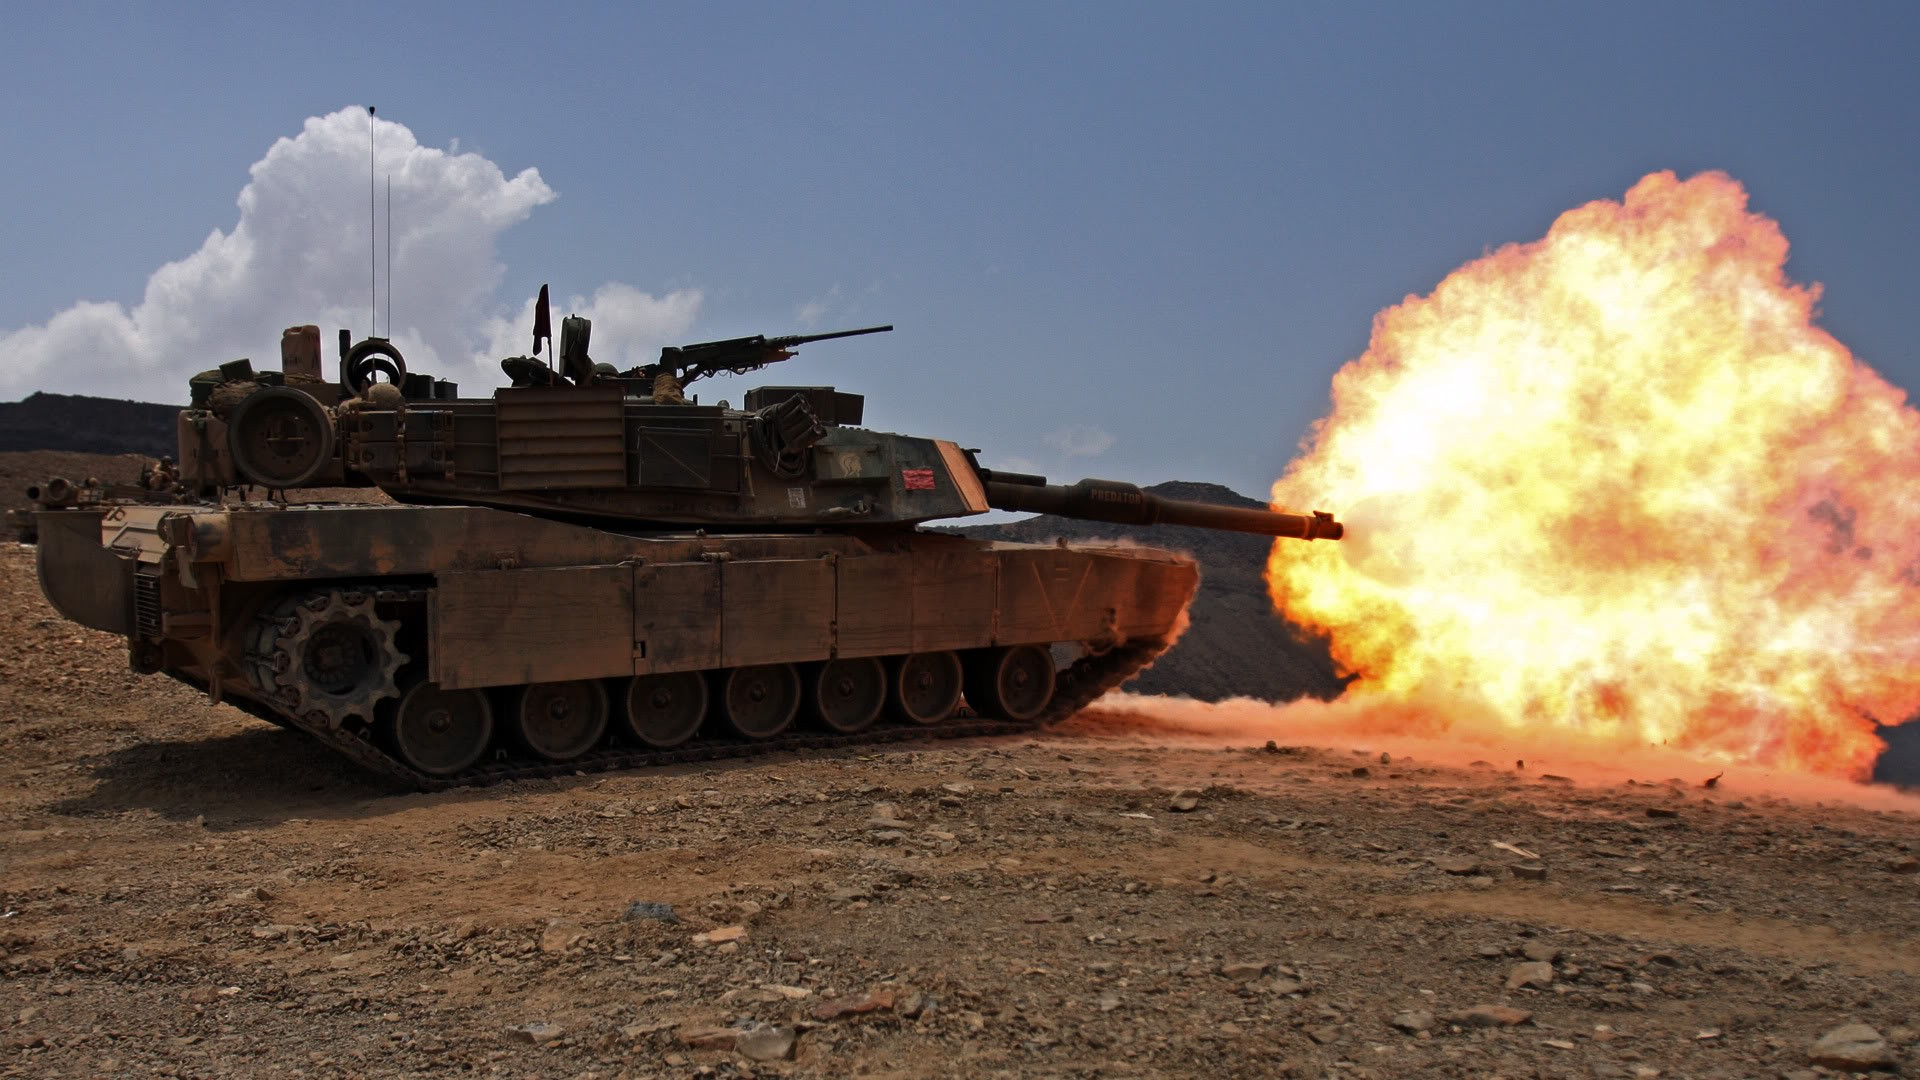 m1-abrams-tank-firing-hd-wallpaper